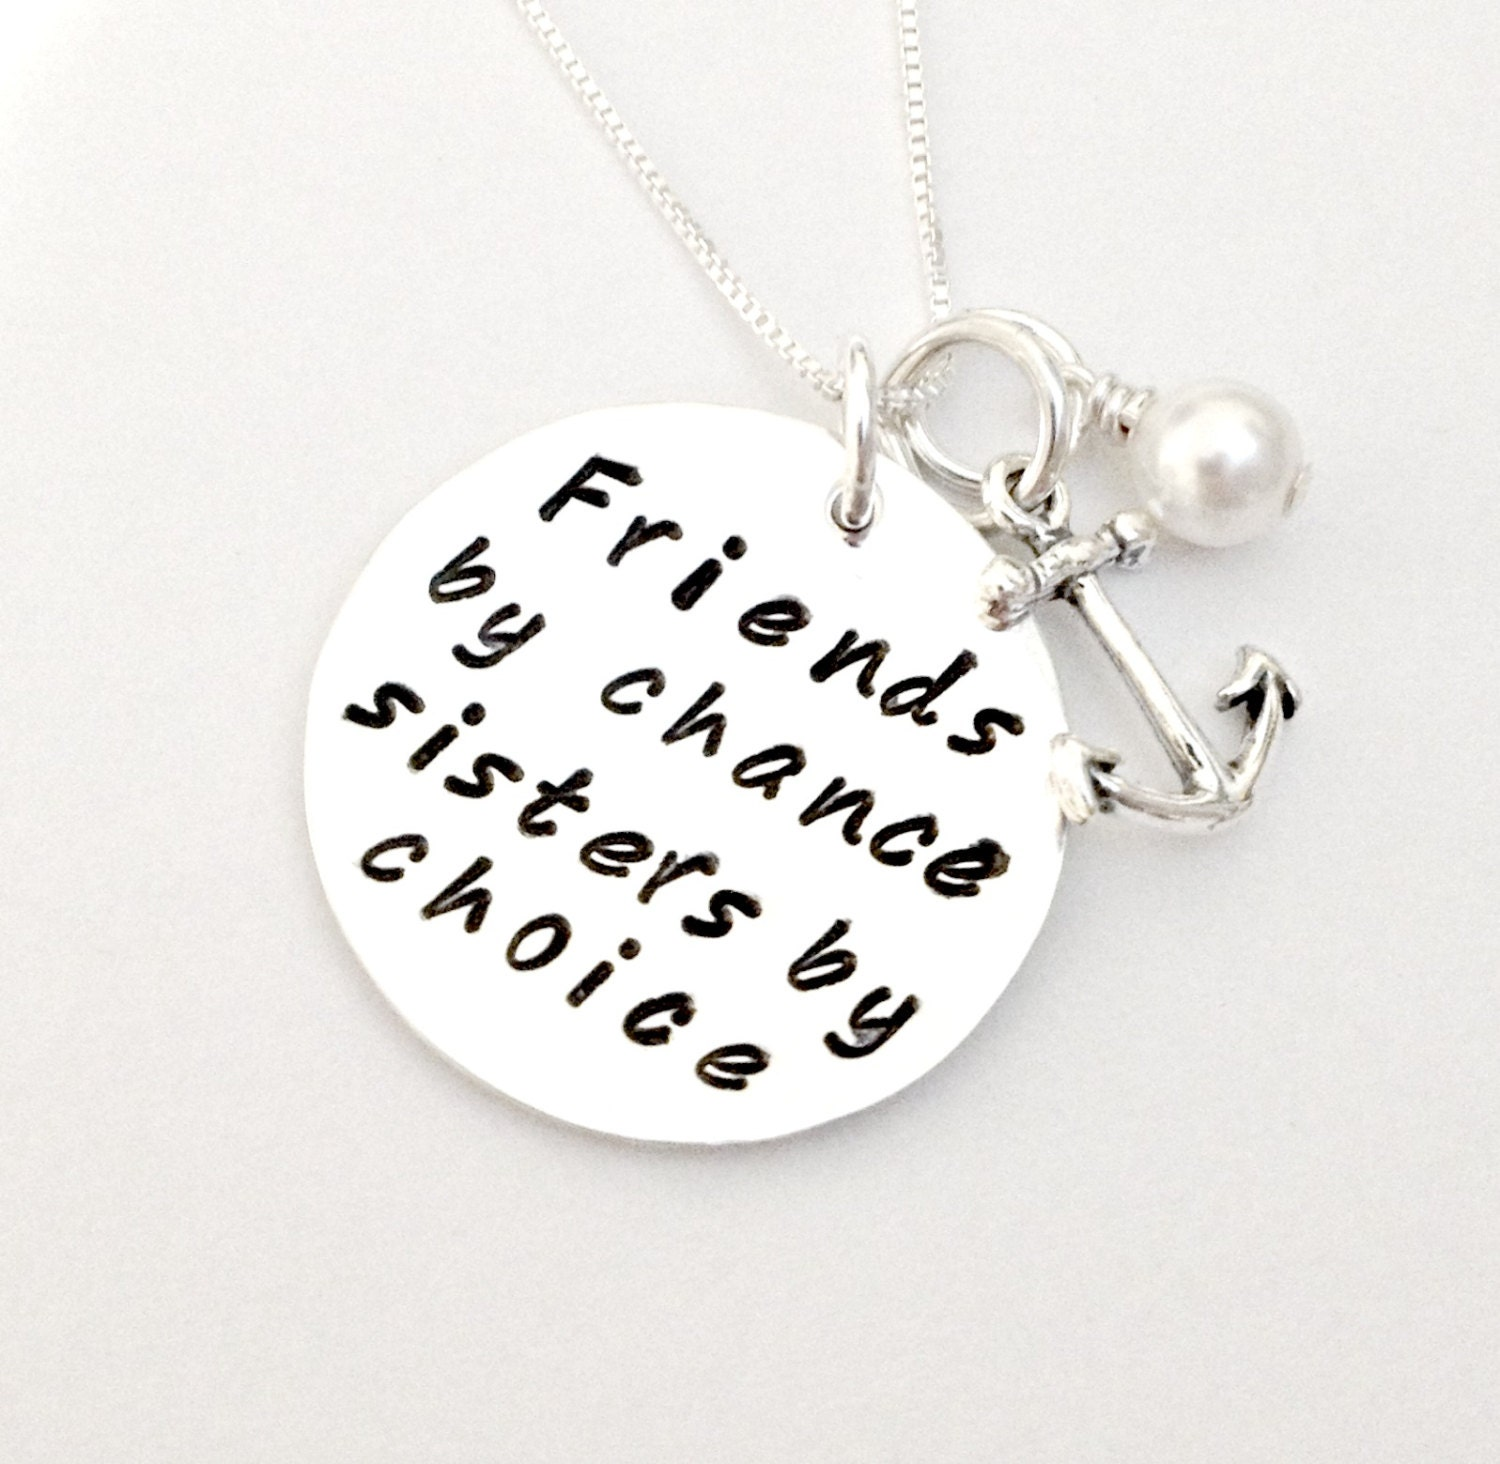 Quotes About Pearls And Friendship Friendschance Sisterschoice Personalized Hand